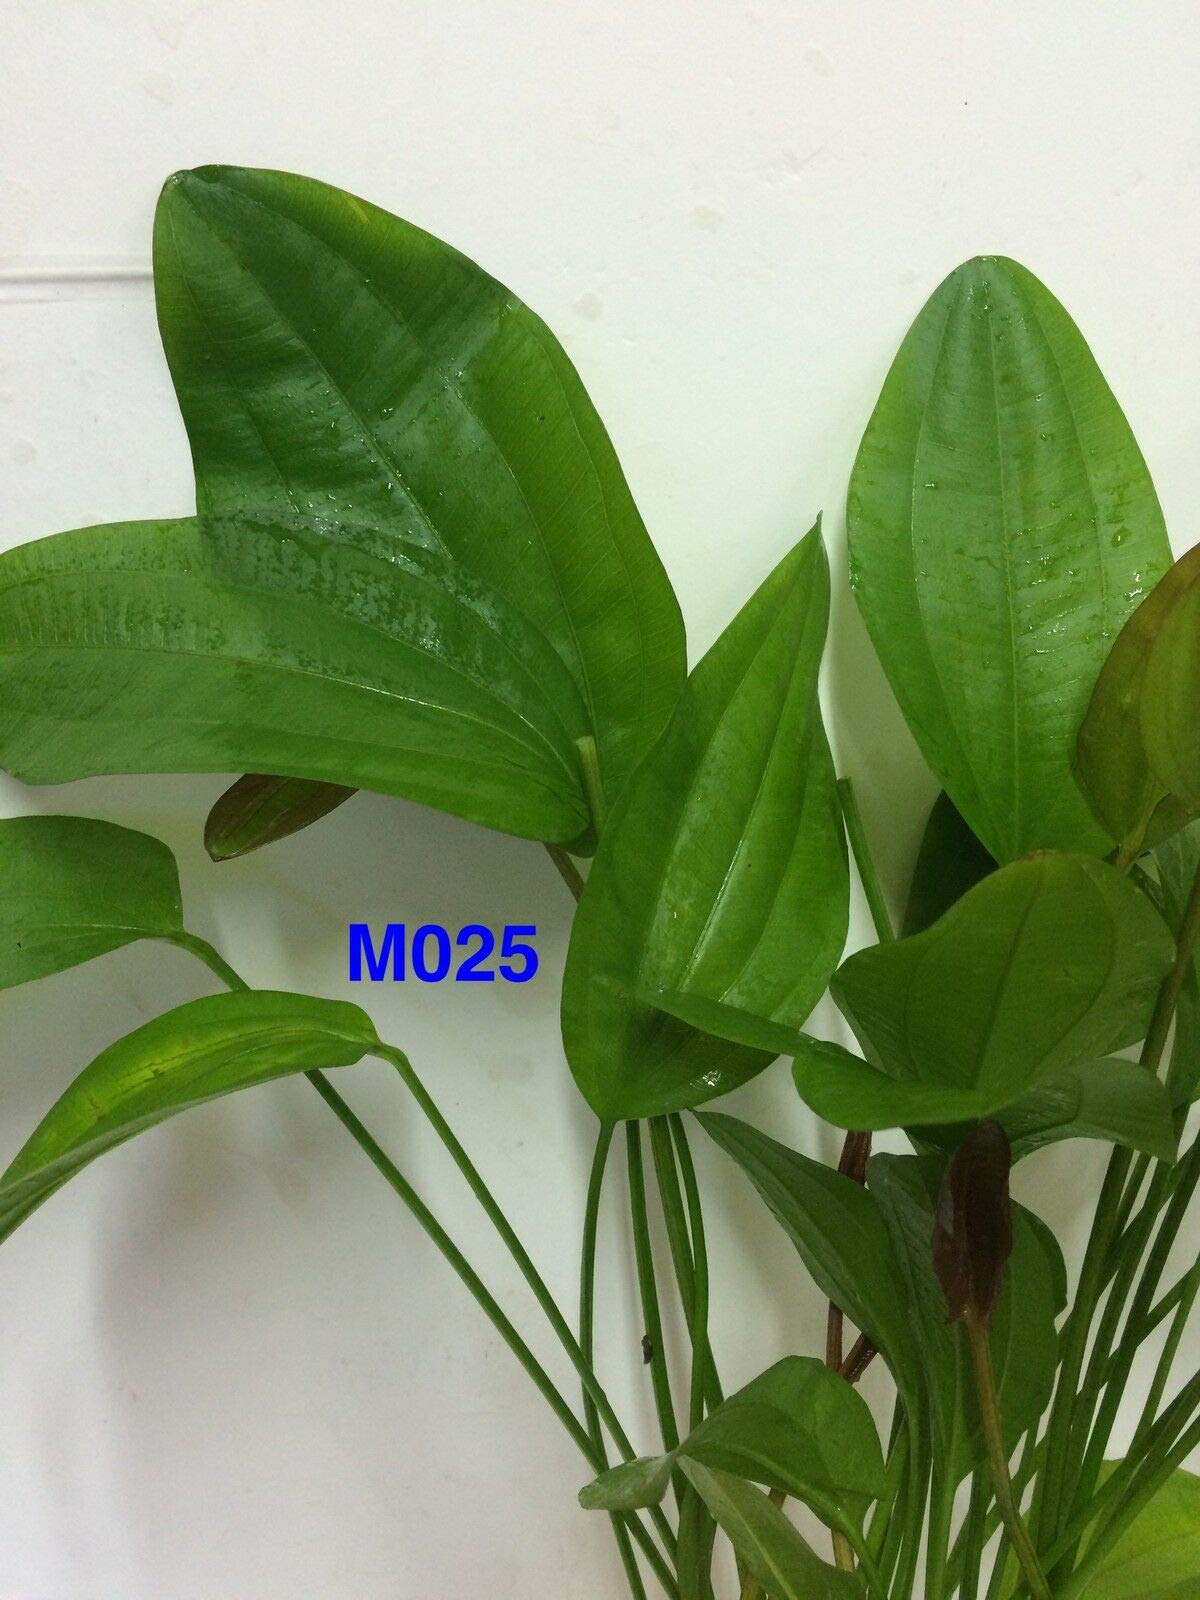 Echinodorus 'Rose' Mother Pot Live Aquatic Fresh Water Plant M025 jKE -130